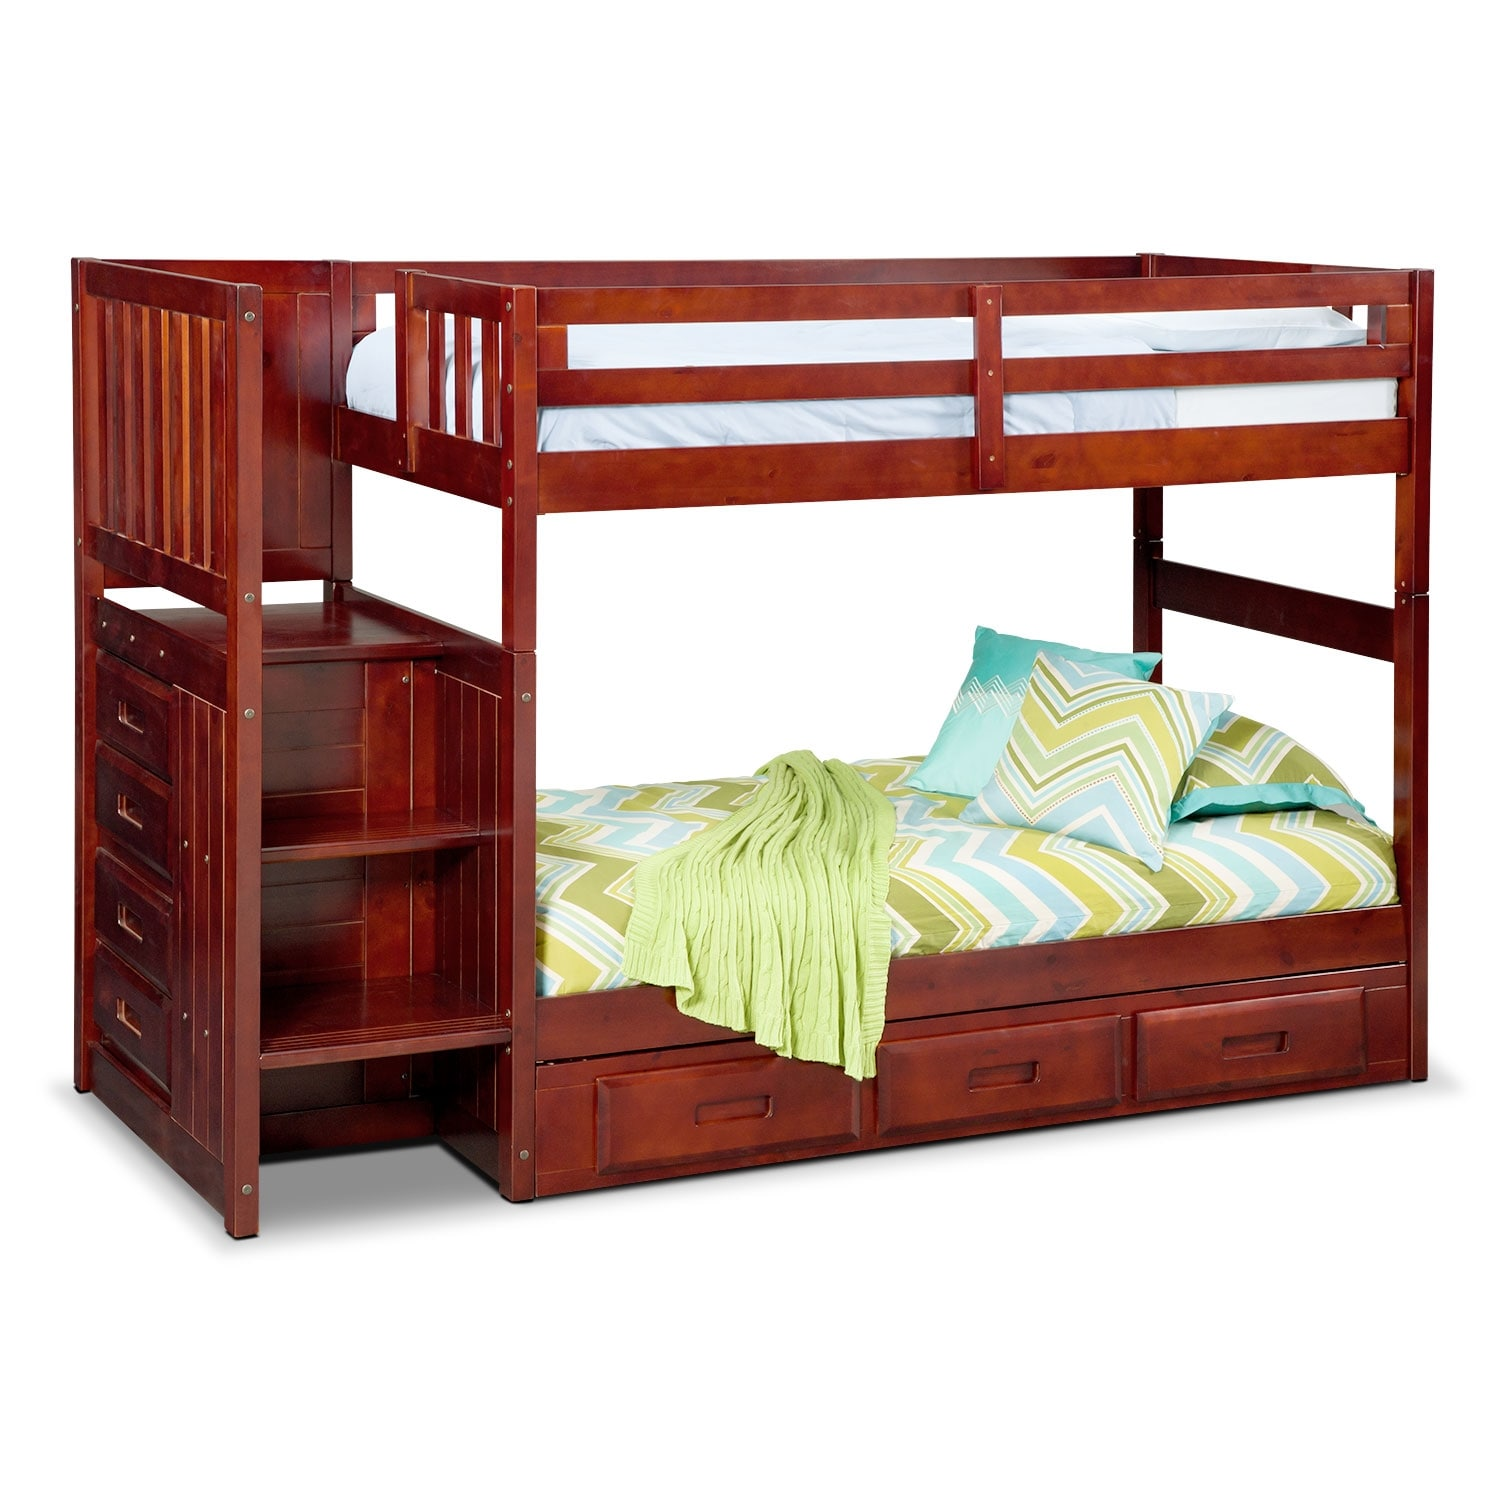 Ranger merlot twin twin bunk bed with stairs and 7 drawer storage value city furniture - Bunk bed with drawer steps ...